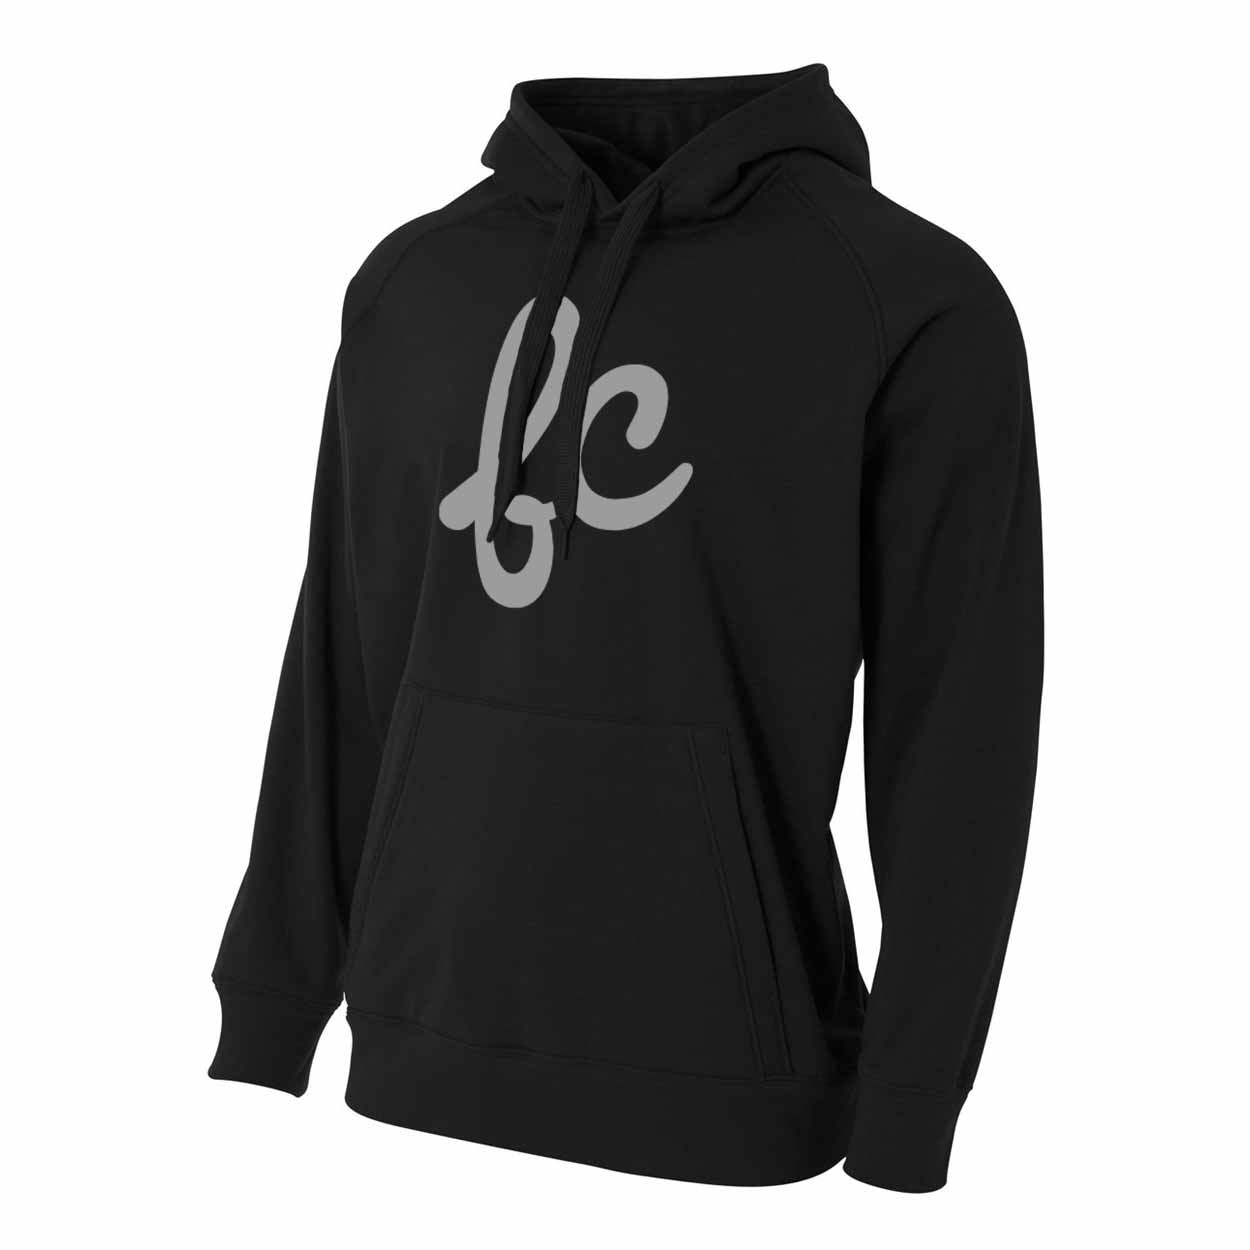 Men's Hoodie - Cursive - Fairly Casual - Clothing